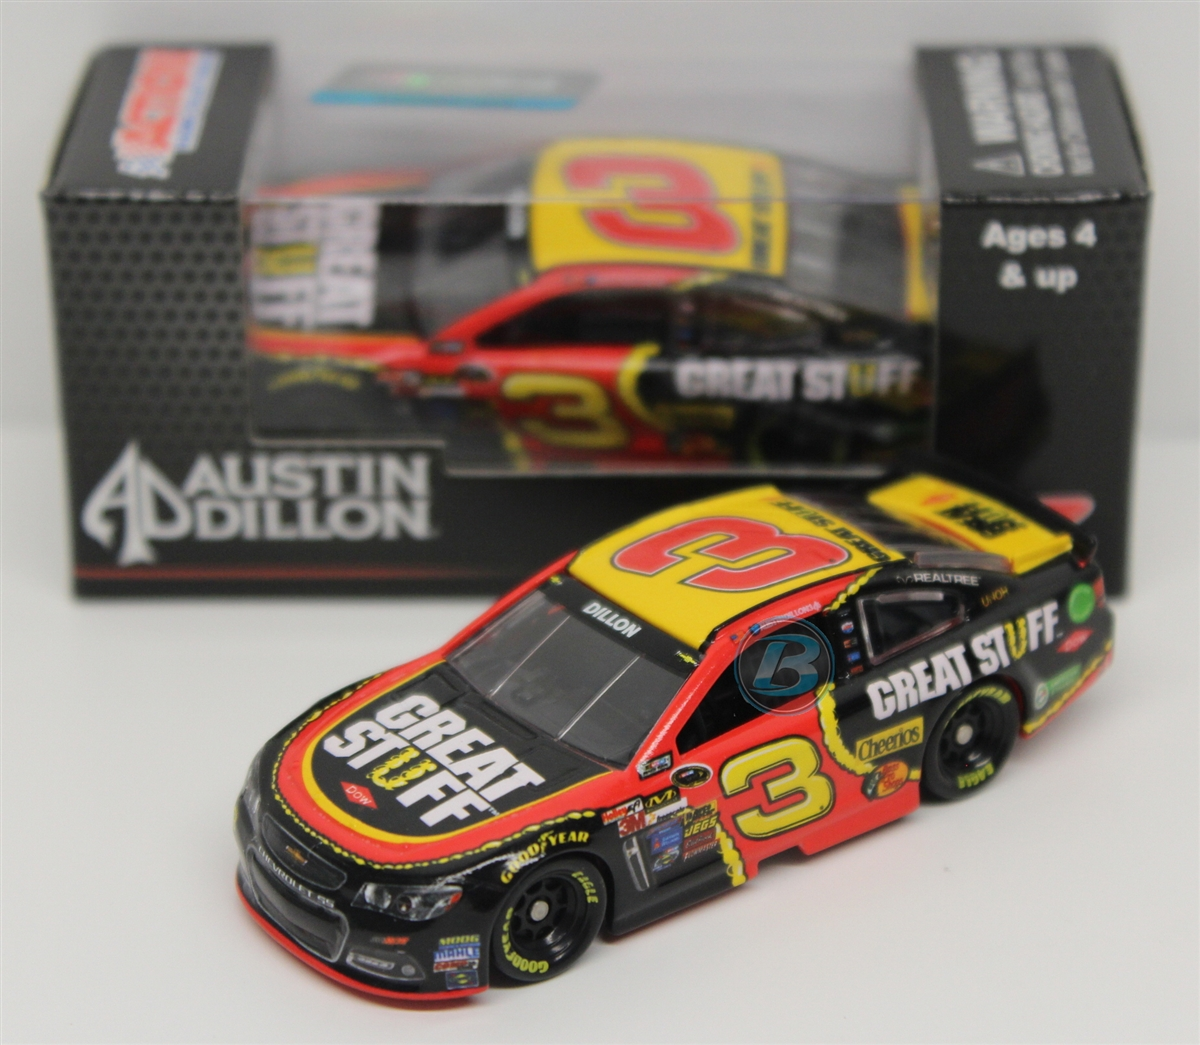 Austin Dillon 2014 Dow Great Stuff 1:64 Nascar Diecast by Lionel Racing